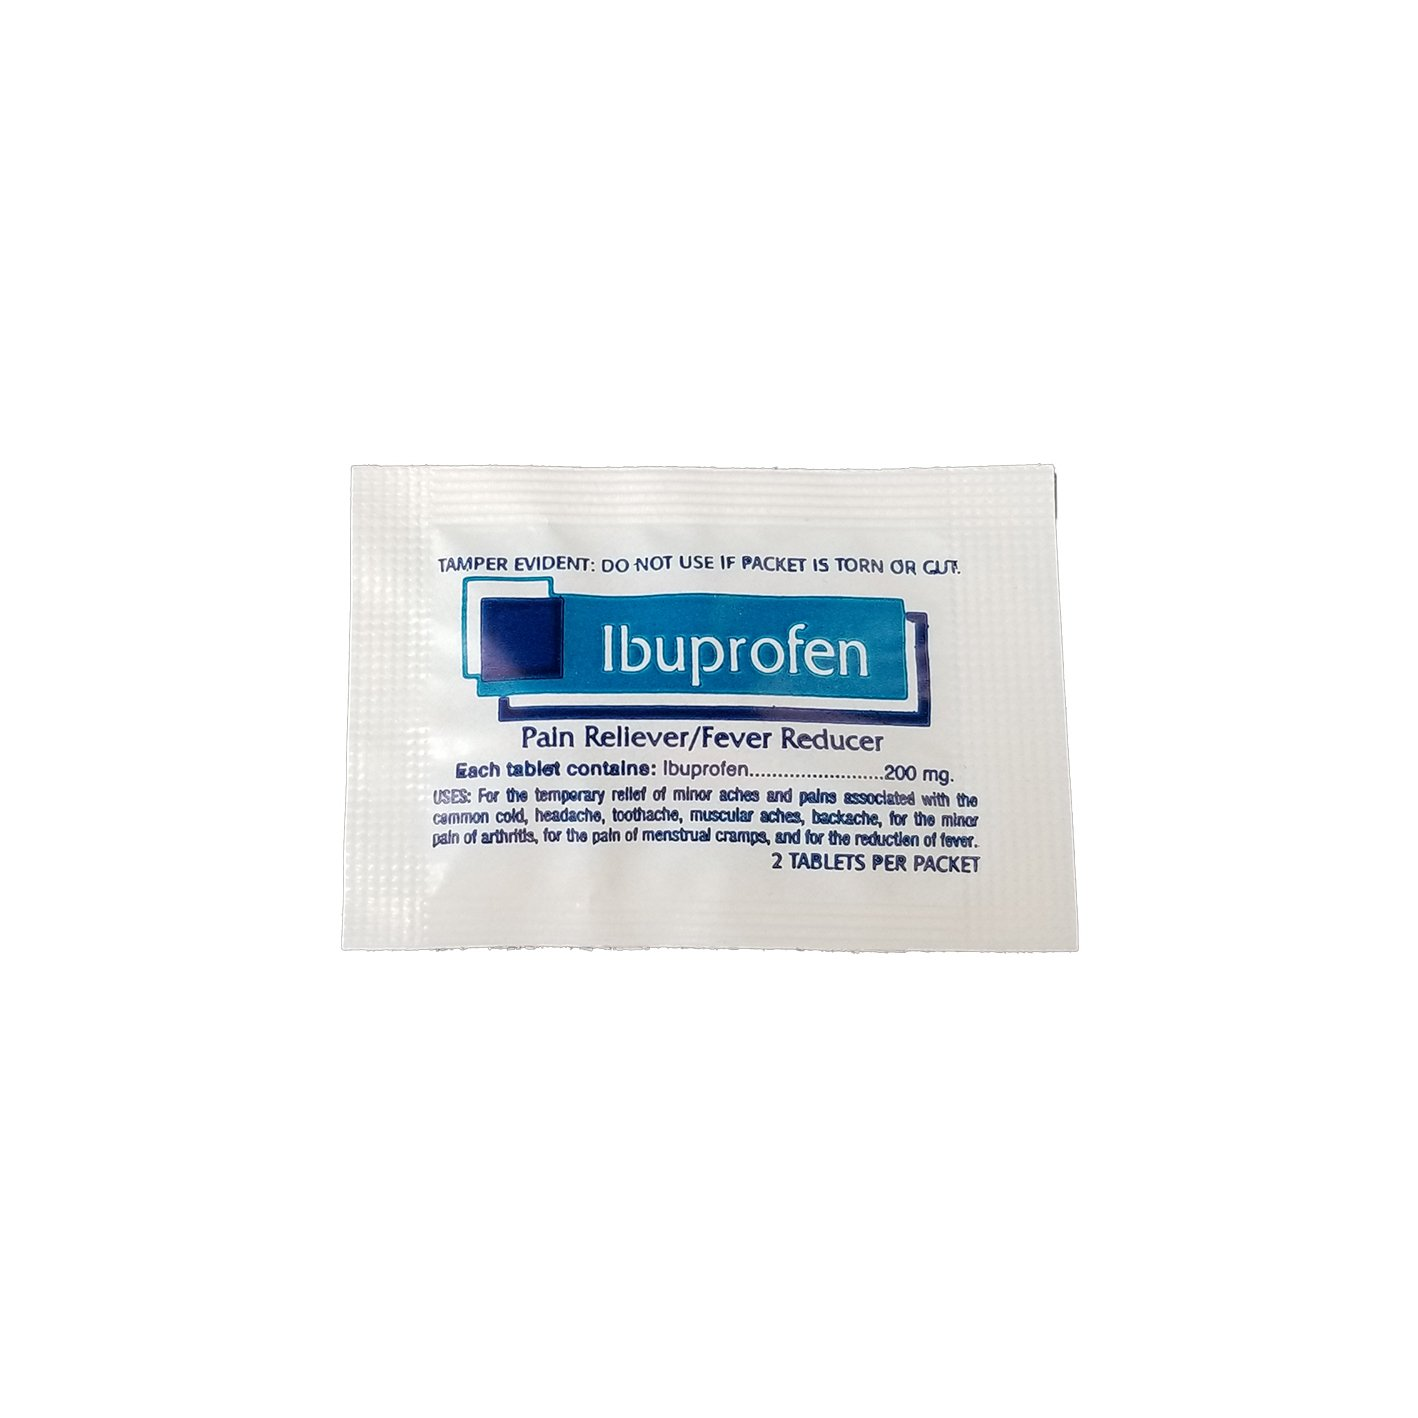 Amazon.com: Ibuprofen 200mg Travel Packets with dispenser box - Great for First Aid Kit and workplaces - 50 packets of 2: Health & Personal Care